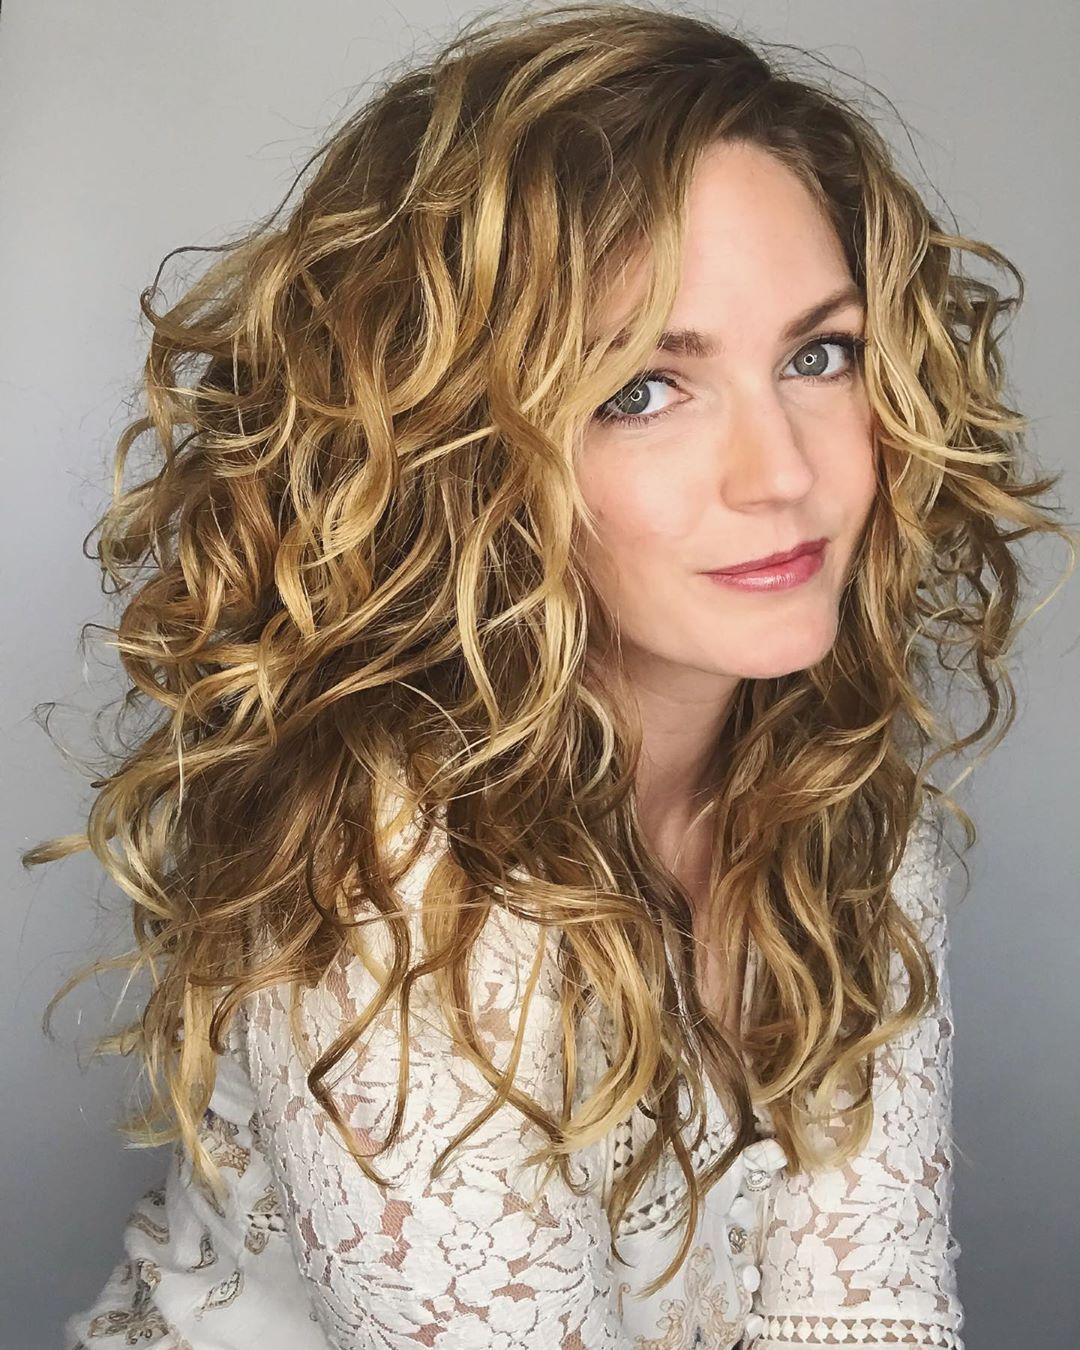 Naturally Curly Wavy Blonde Hair Curly Girl Method Curly Hair Styles Curly Hair Photos Curly Hair Styles Naturally